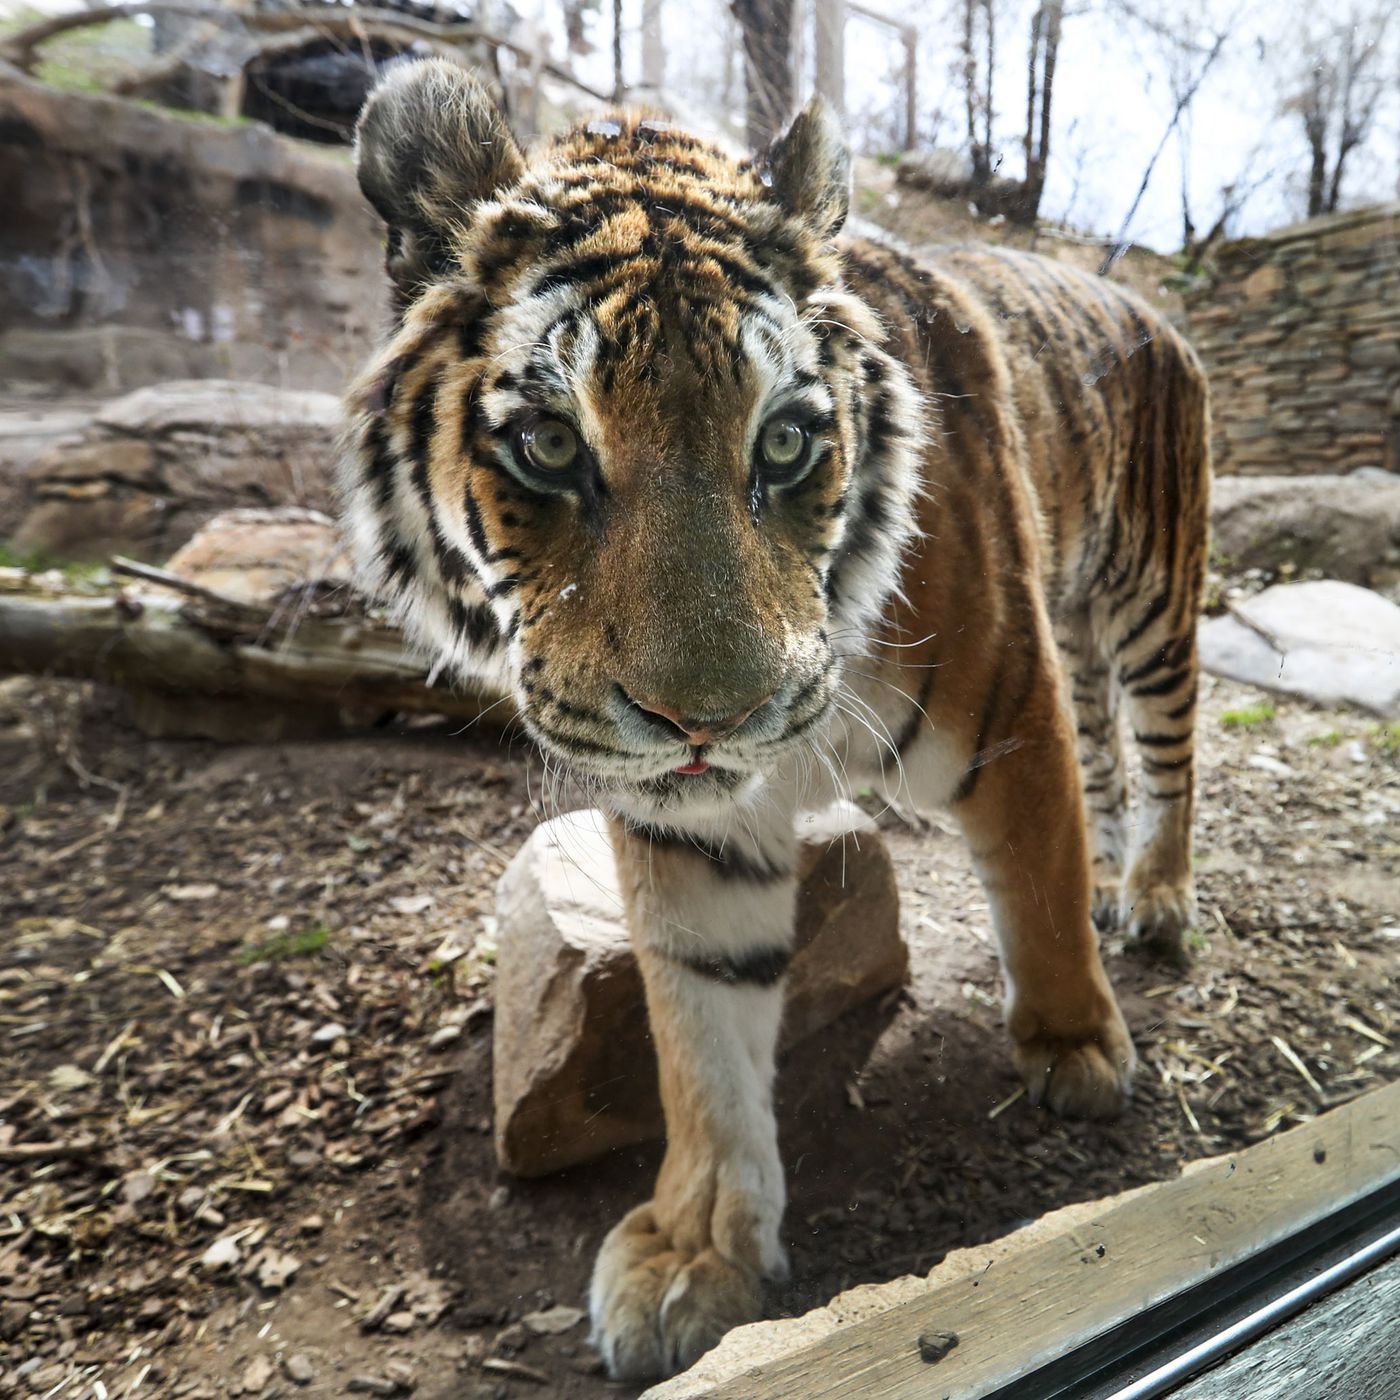 Hogle Zoo Taking Coronavirus Precautions With Lions Tigers Deseret News